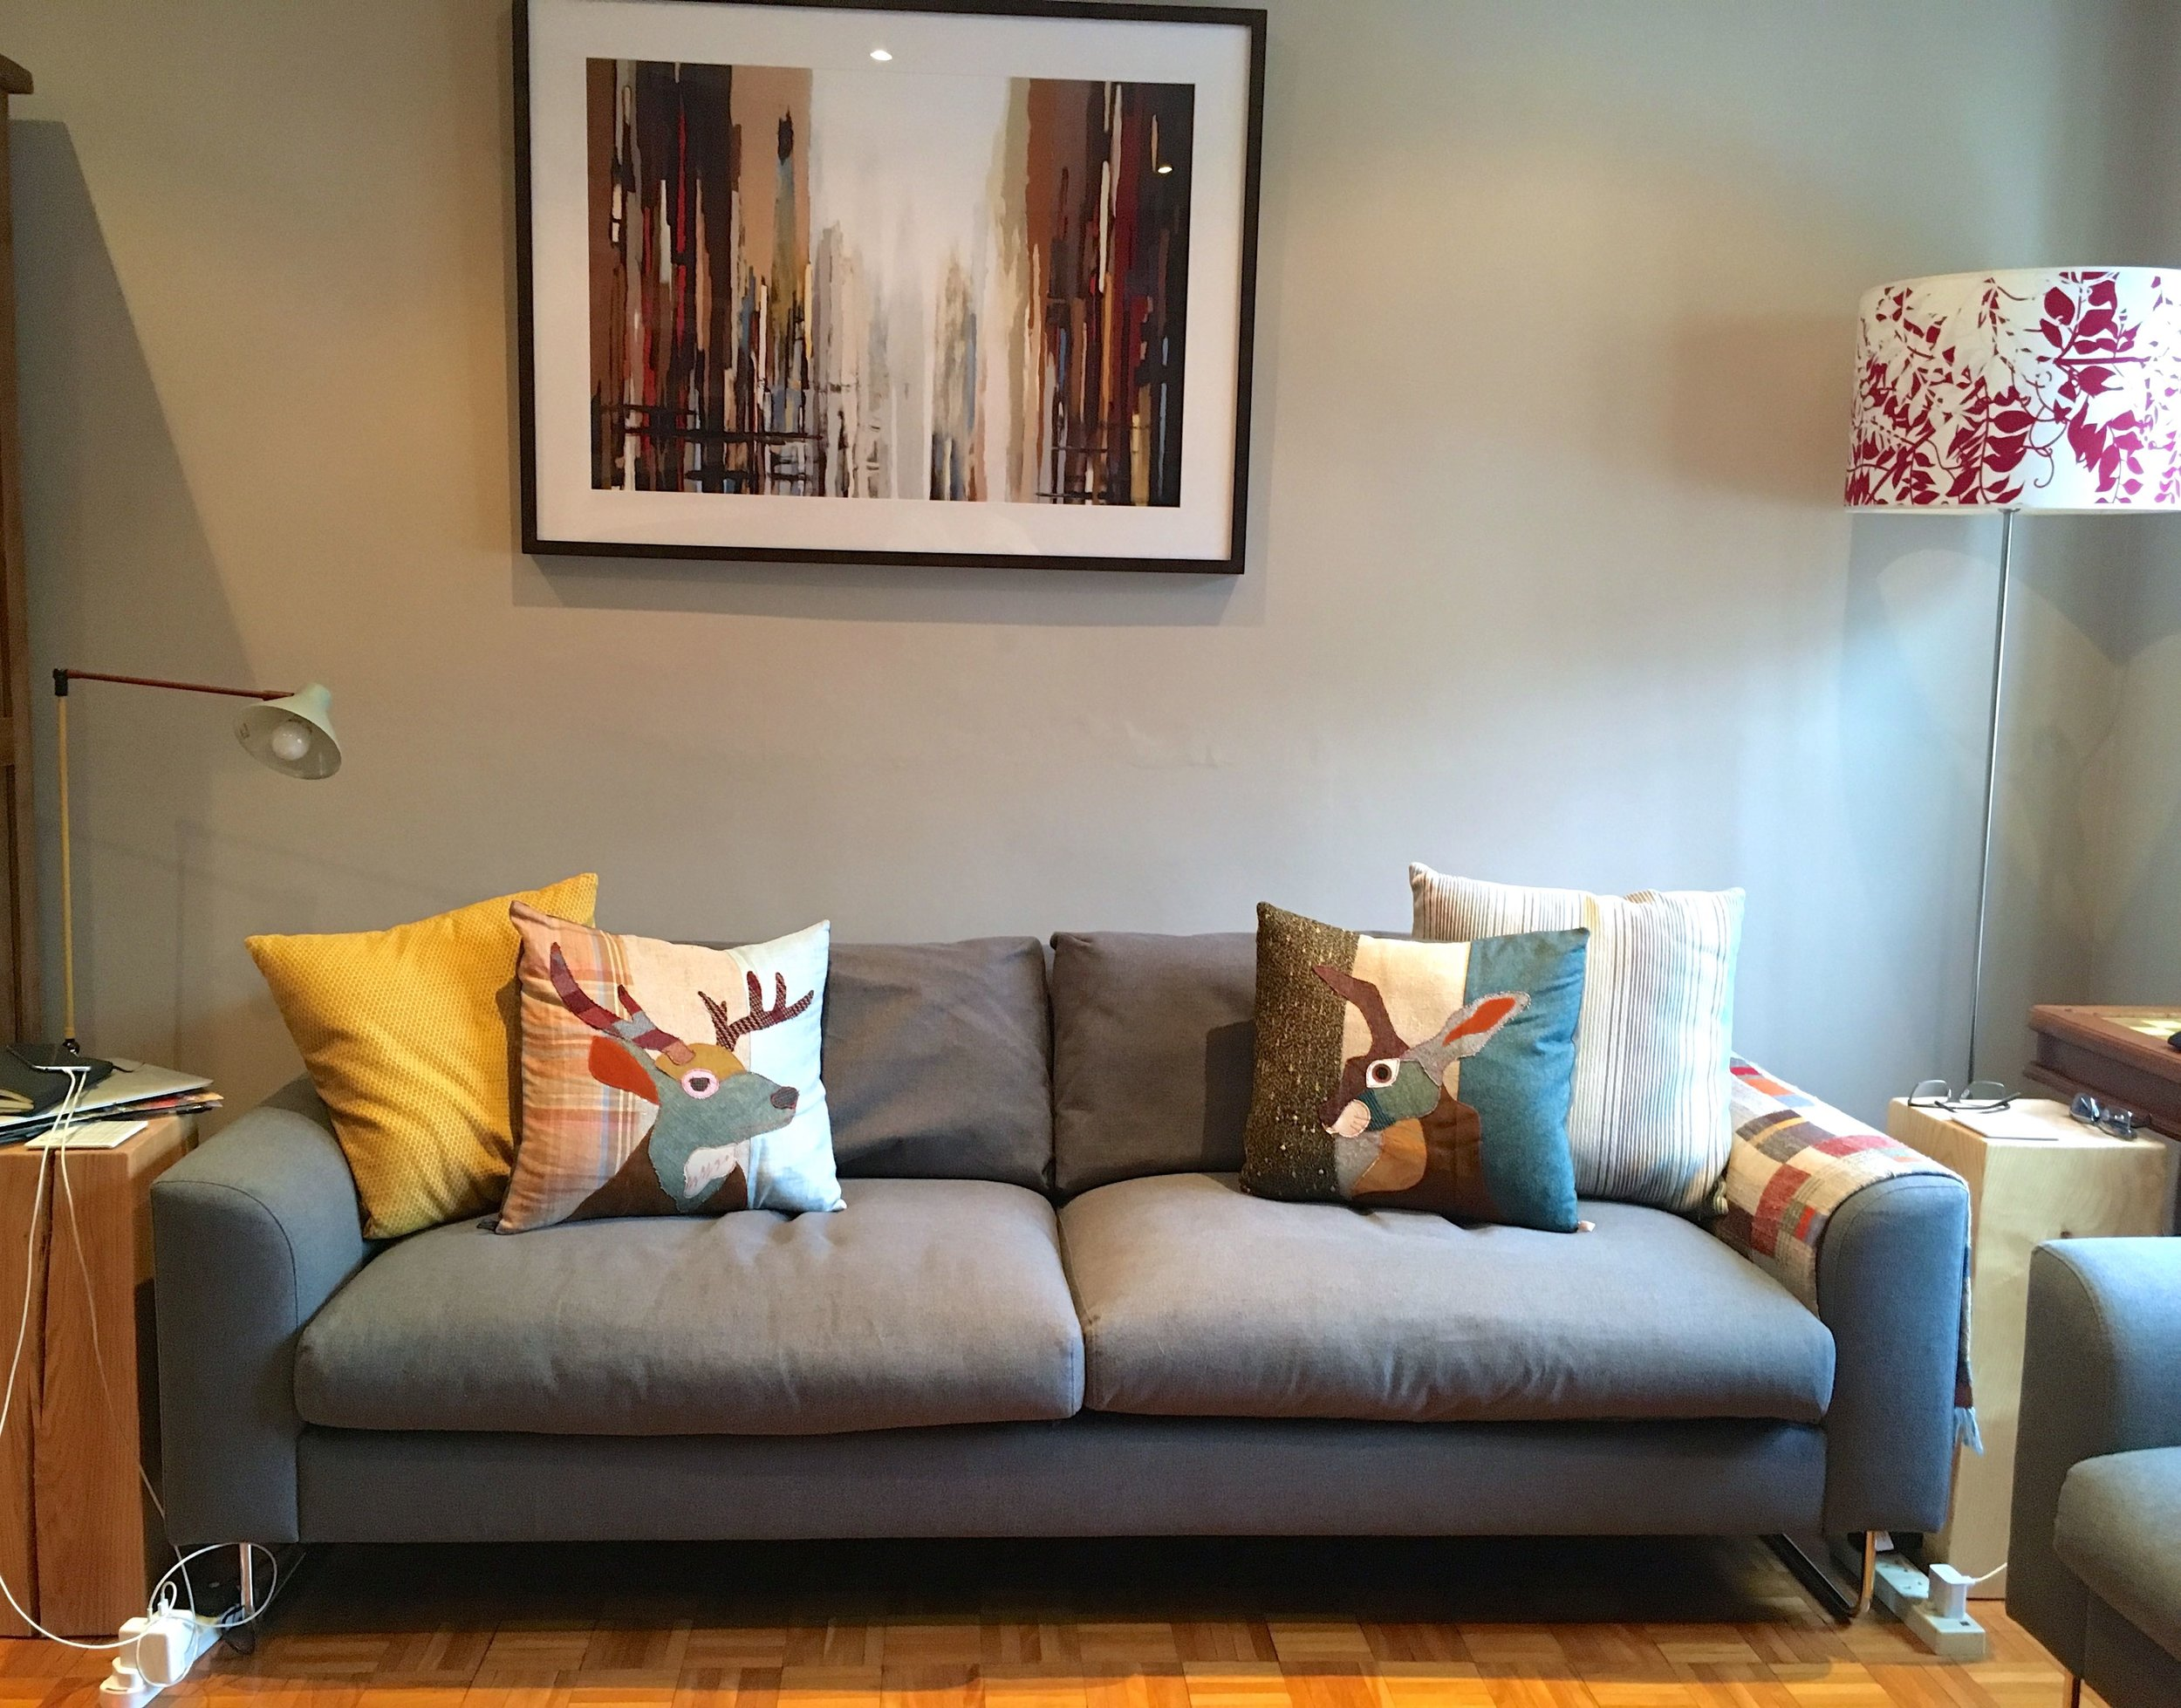 our new sofa bedecked with cushions